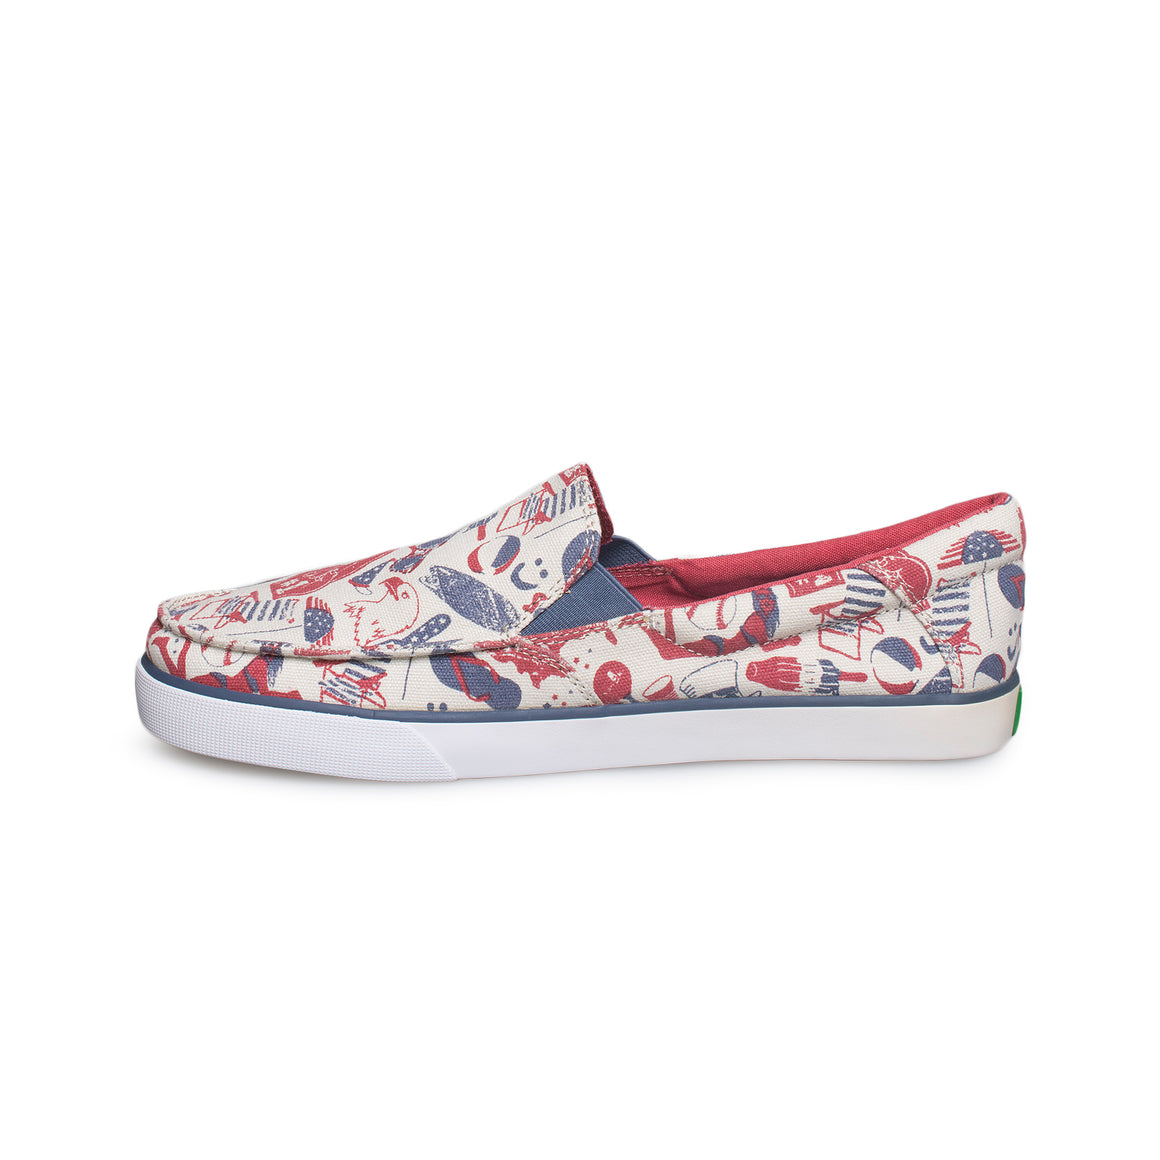 SANUK Sideline Patriot American Icon Shoes - Men's